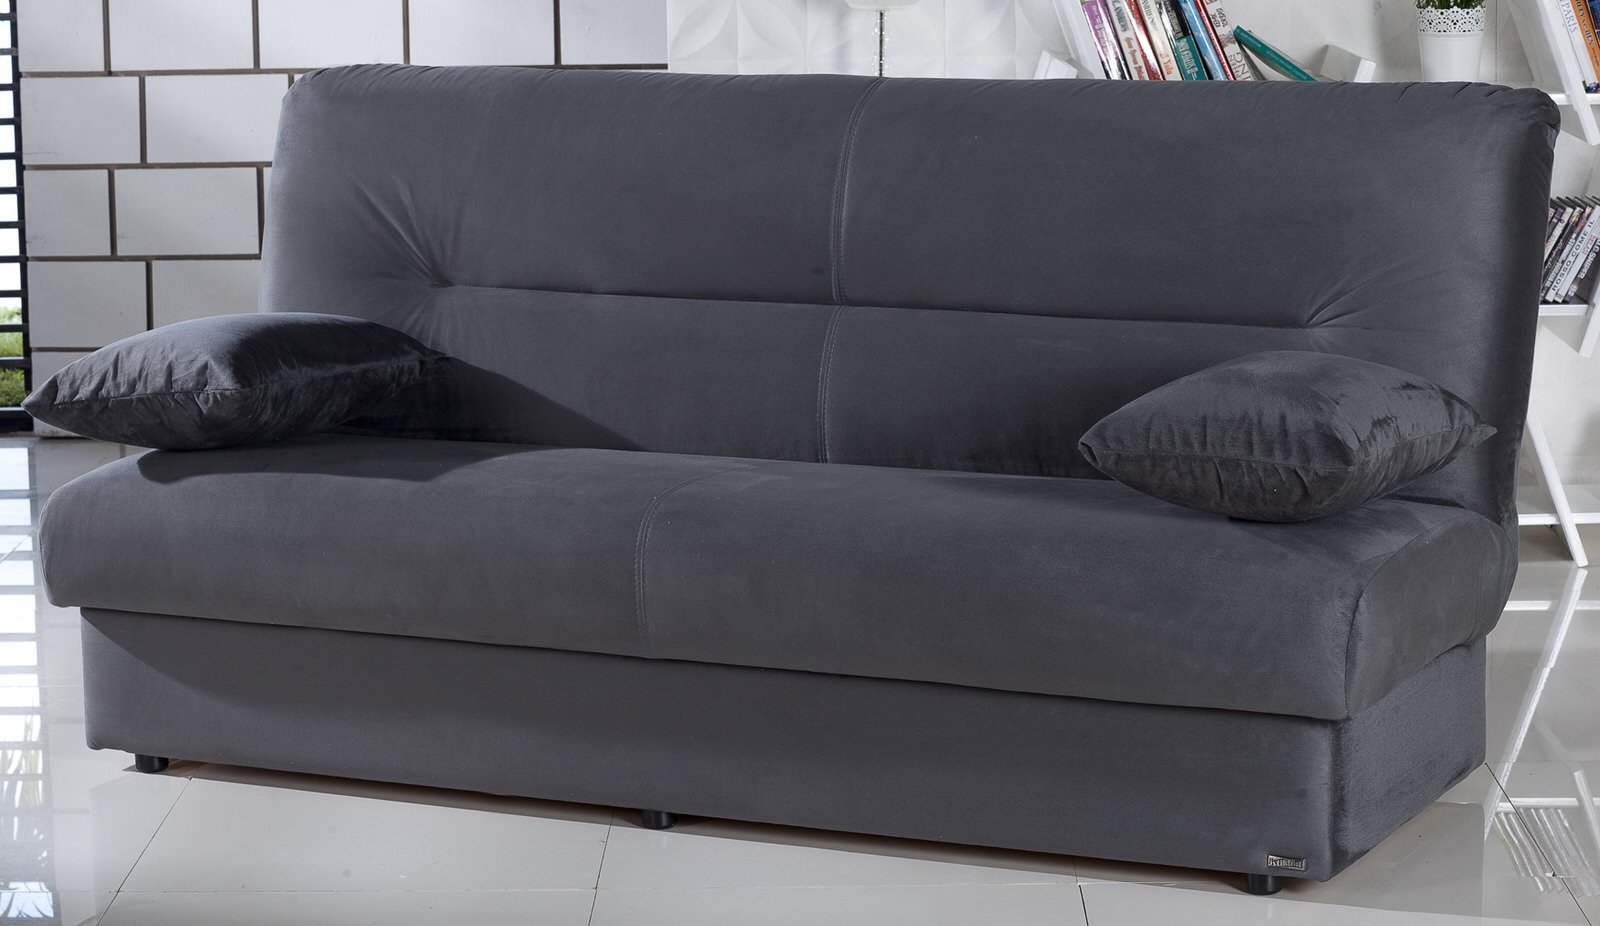 Regata Rainbow Dark Gray Convertible Sofa Bed By Sunset